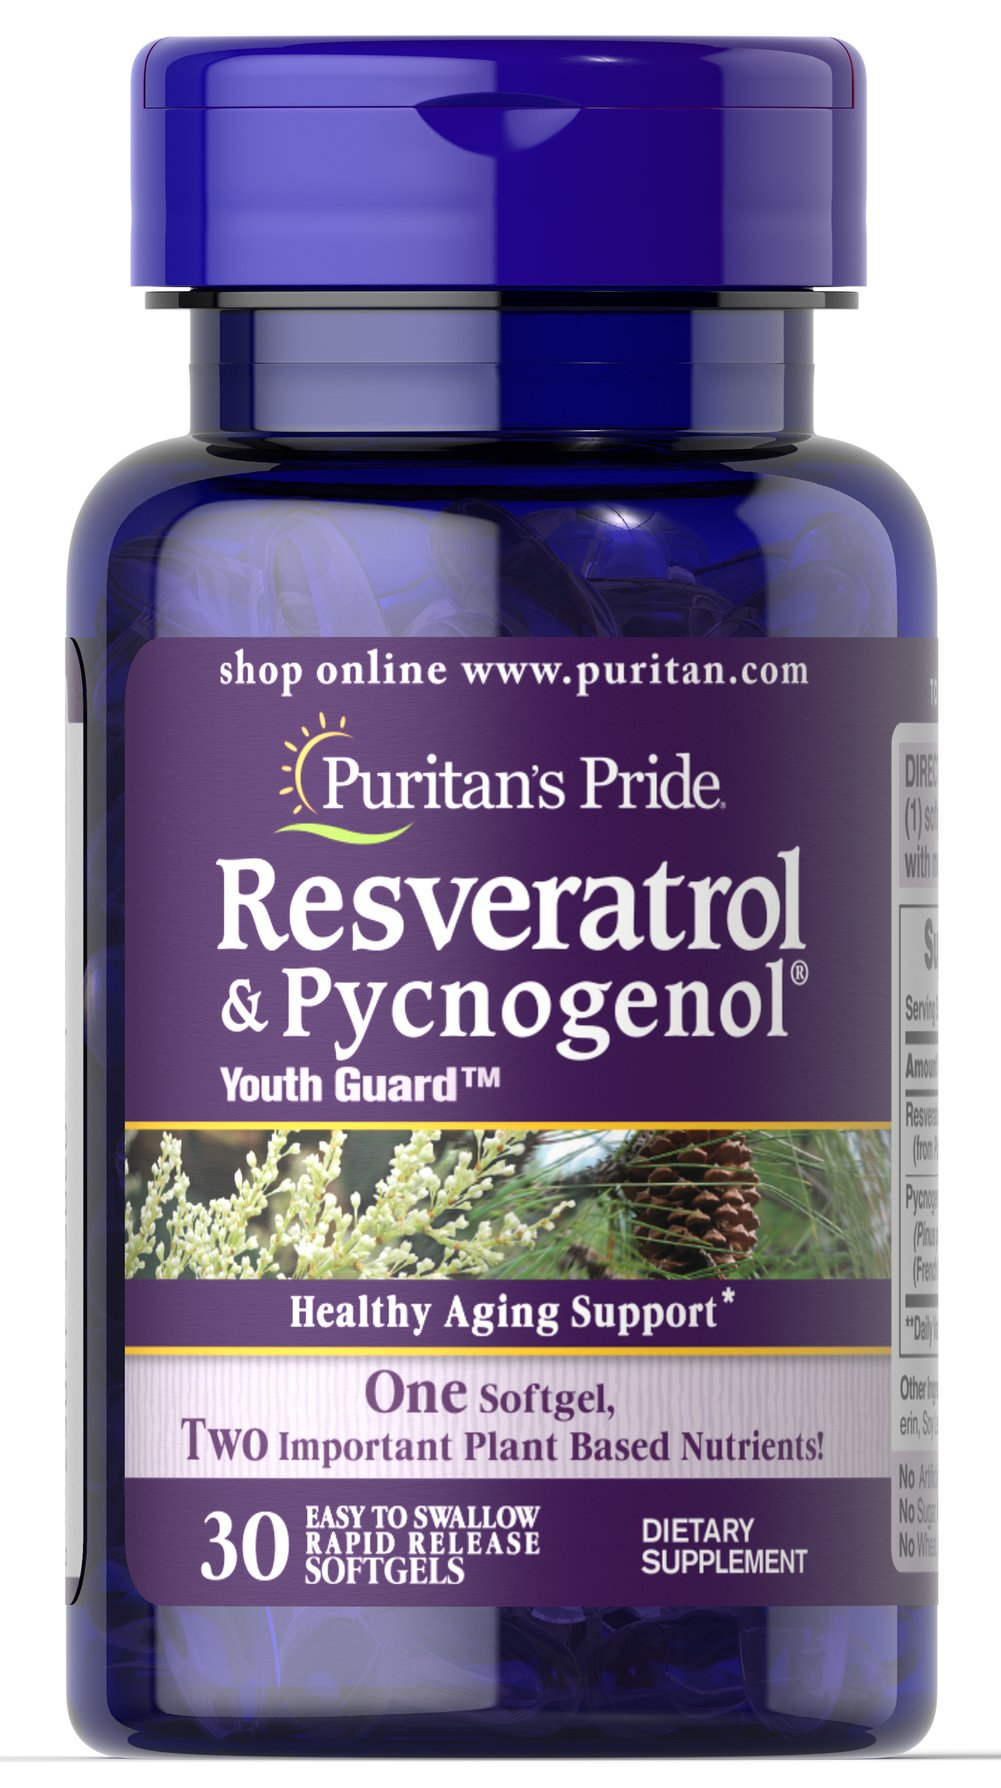 Resveratrol 100 mg & Pycnogenol® 30 mg <ul><li>Healthy Aging Support </li><li>One Softgel, Two Important Plant Based Nutrients </li><li>Easy to Swallow, Rapid Release Softgels<br /></li></ul> 30 Softgels 100 mg/30 mg $31.89